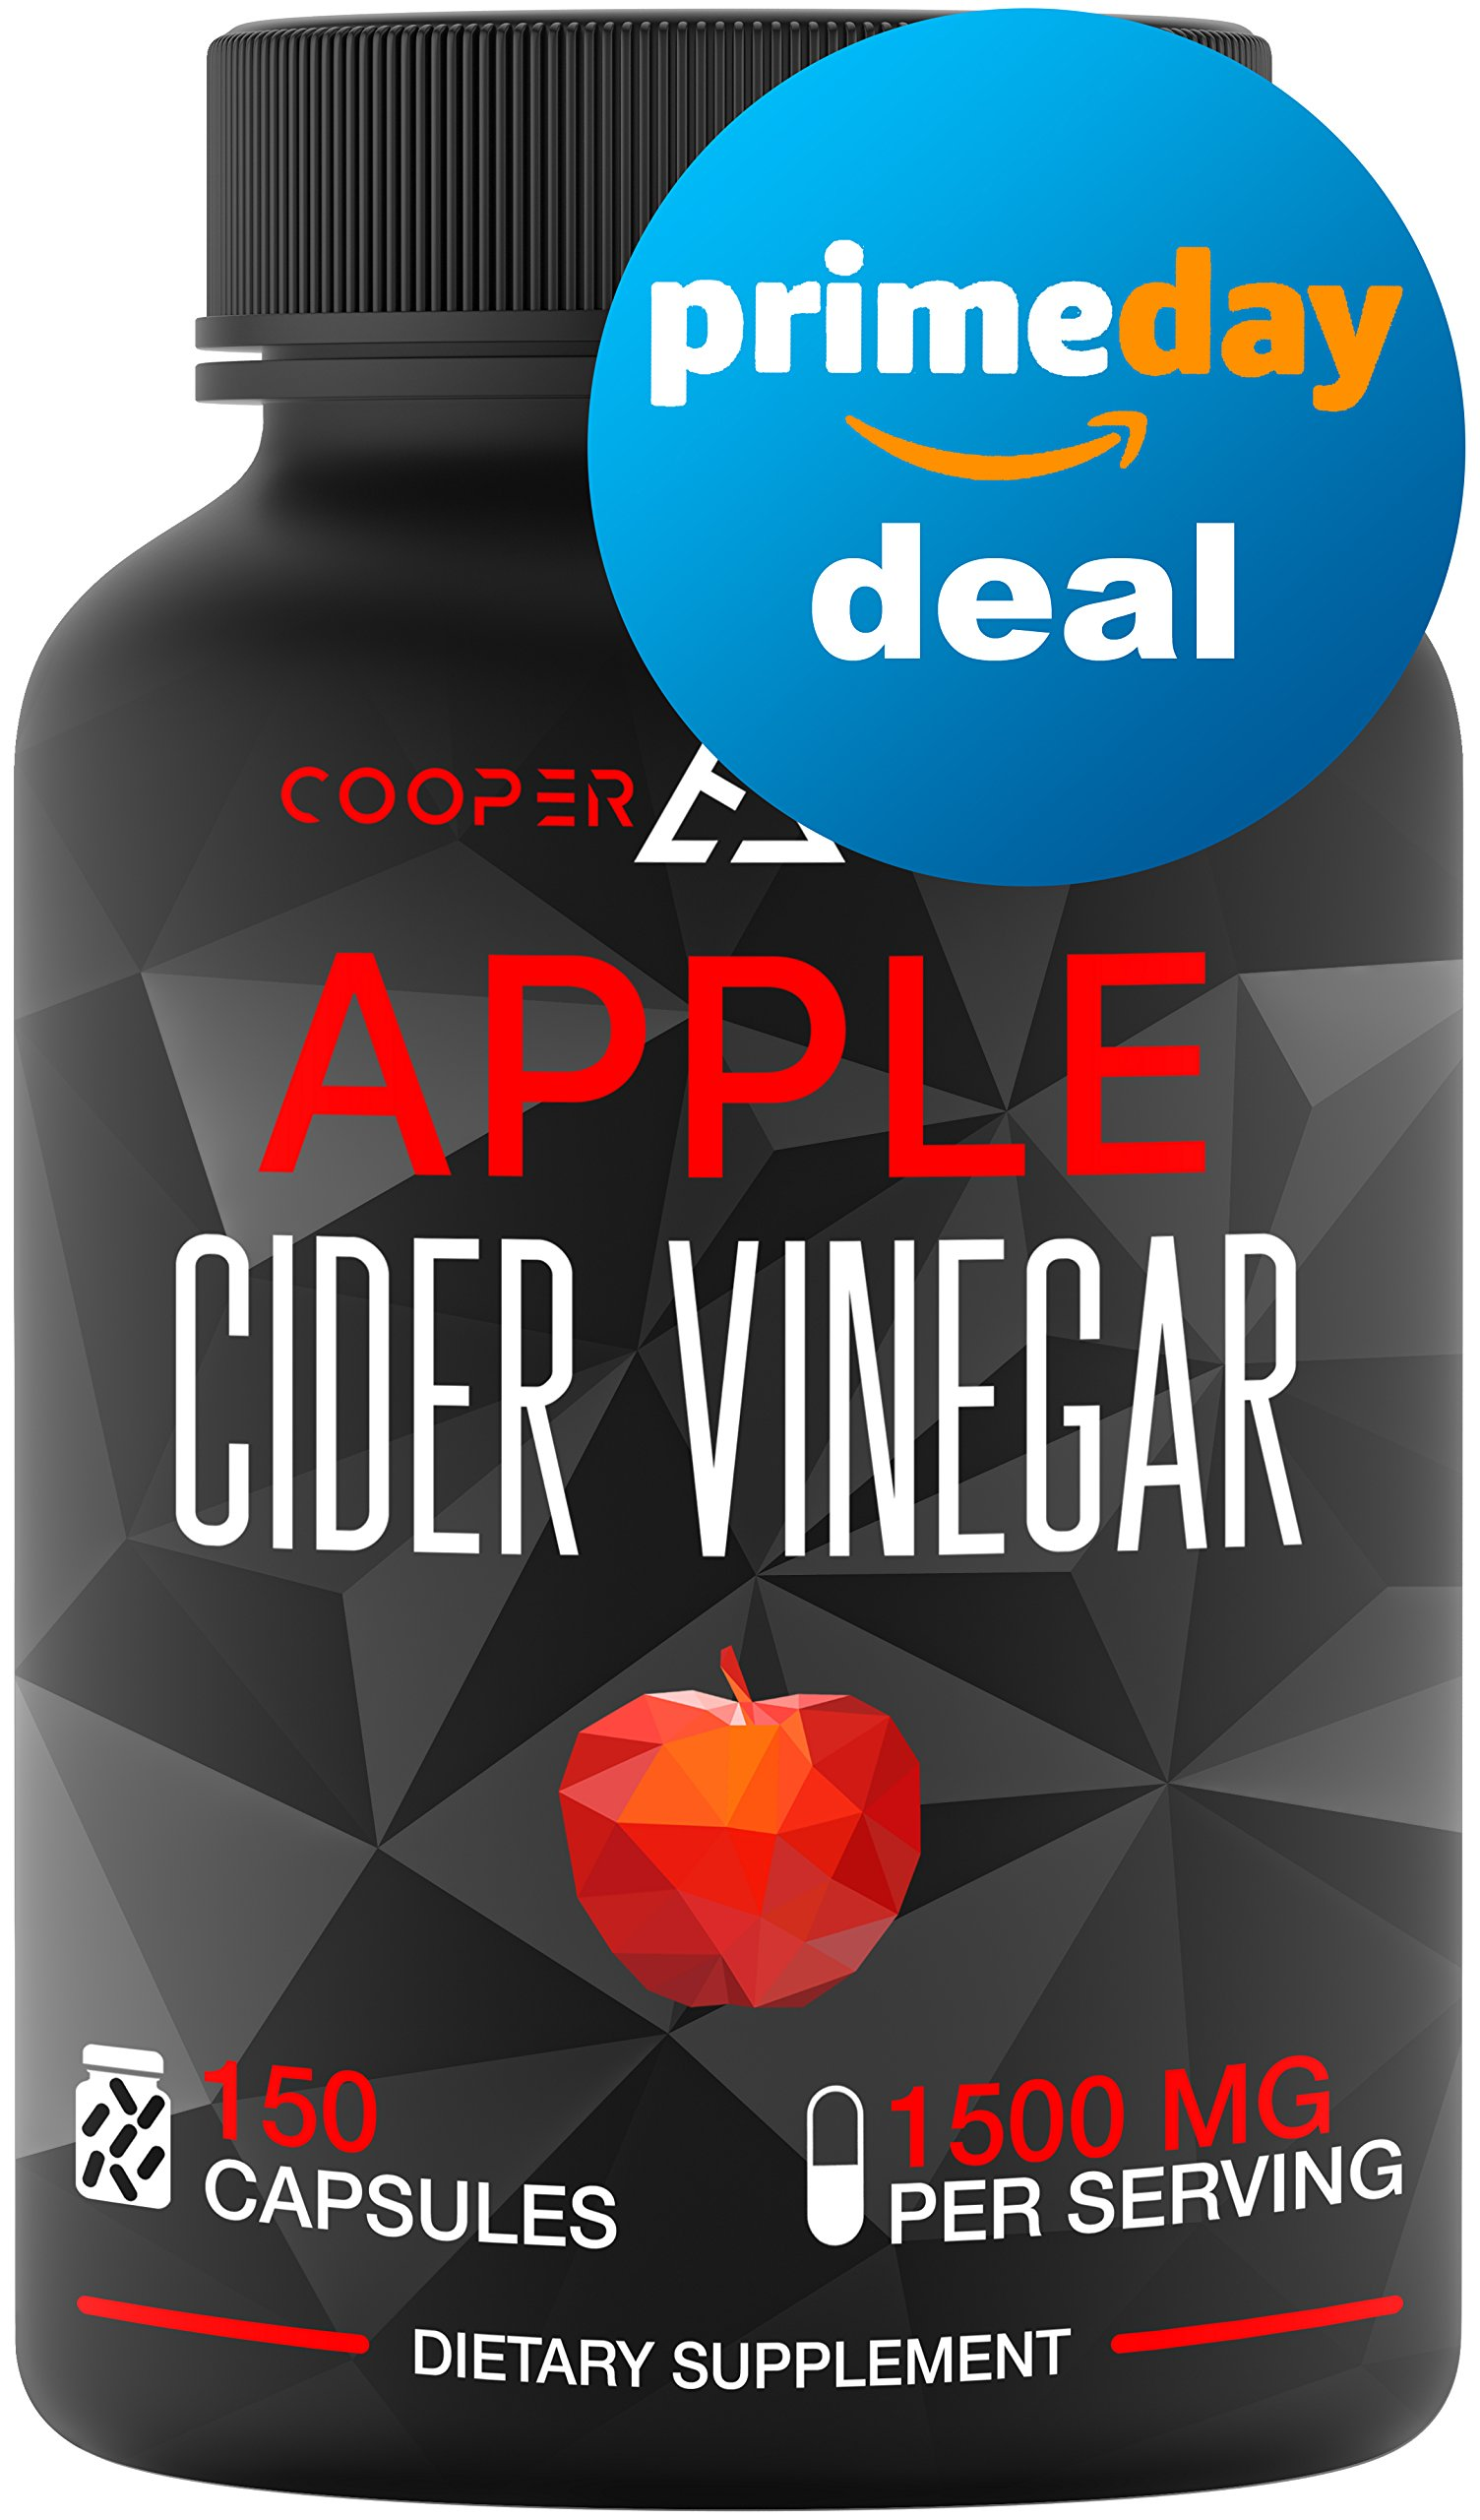 Apple Cider Vinegar Capsules - 150 Capsules 1500 MG - Natural Weight Loss - Healthy Diet - Appetite Suppressant - Detox - Powerful Cleanser Pills - Fat Burners for Men & Women - Metabolism Booster by COOPER BIOTECH